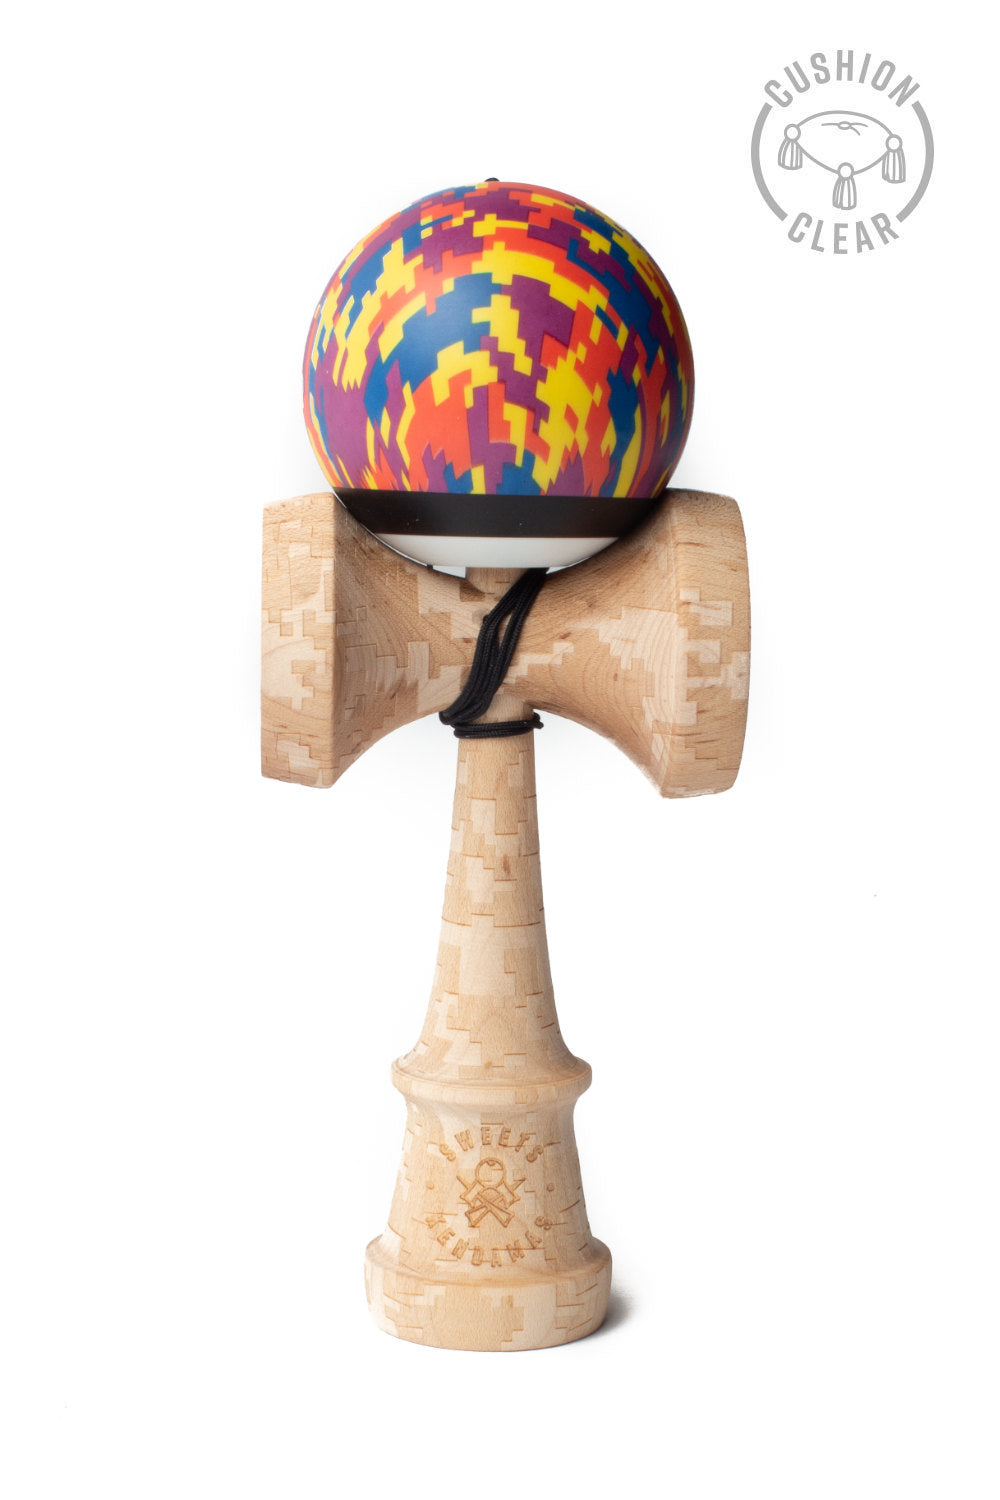 V25 Digital Sunset Cushion Clear Kendama